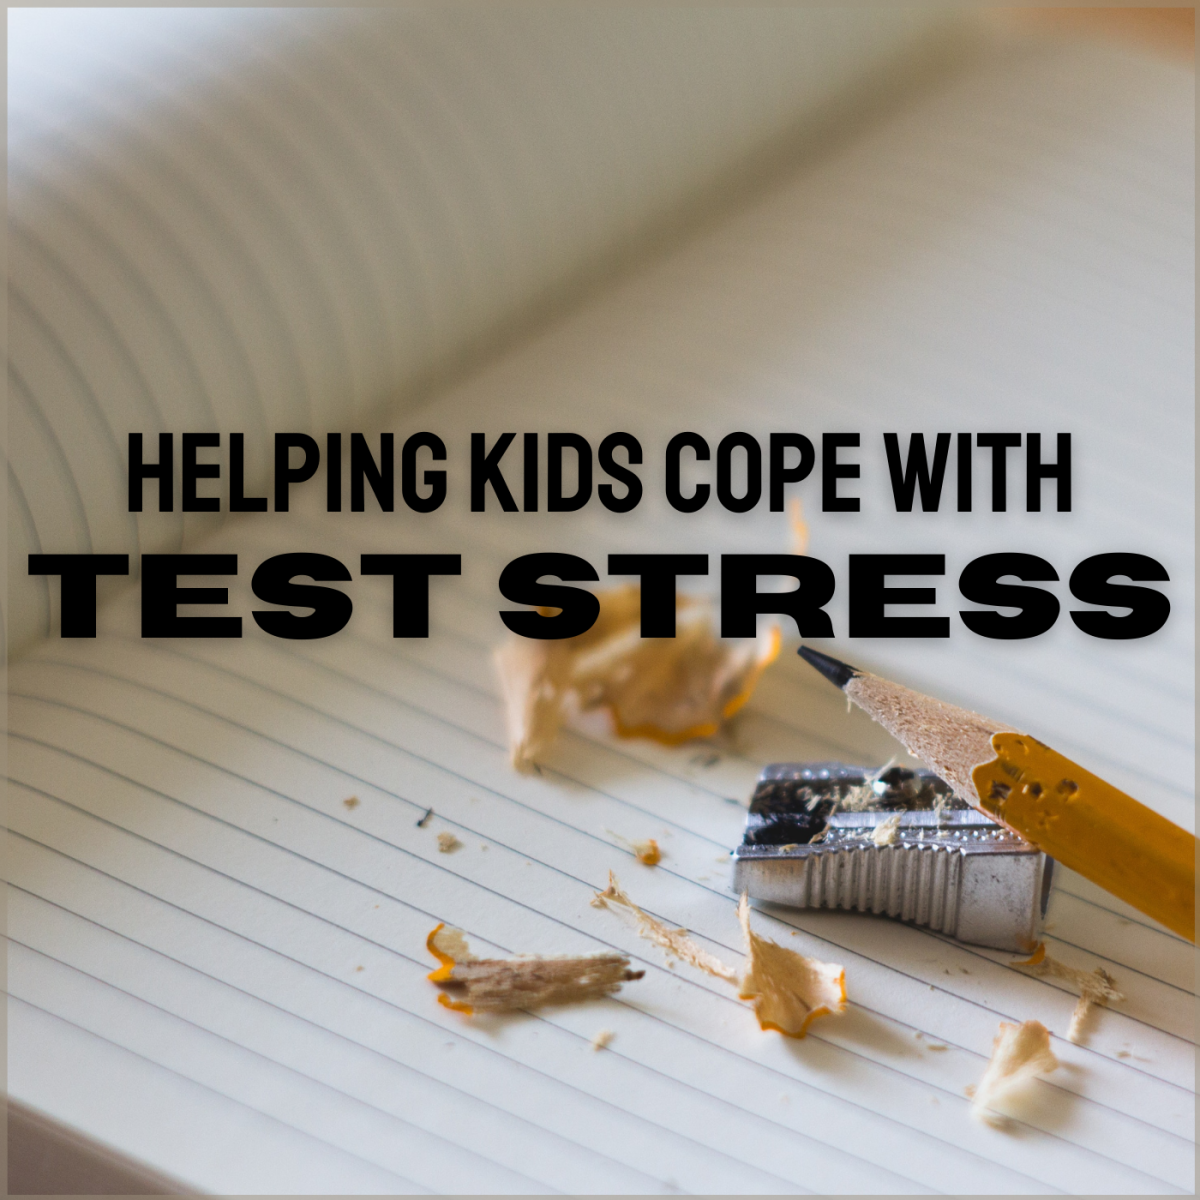 How to Help Kids Cope With Exam-Related Stress: 5 Tips